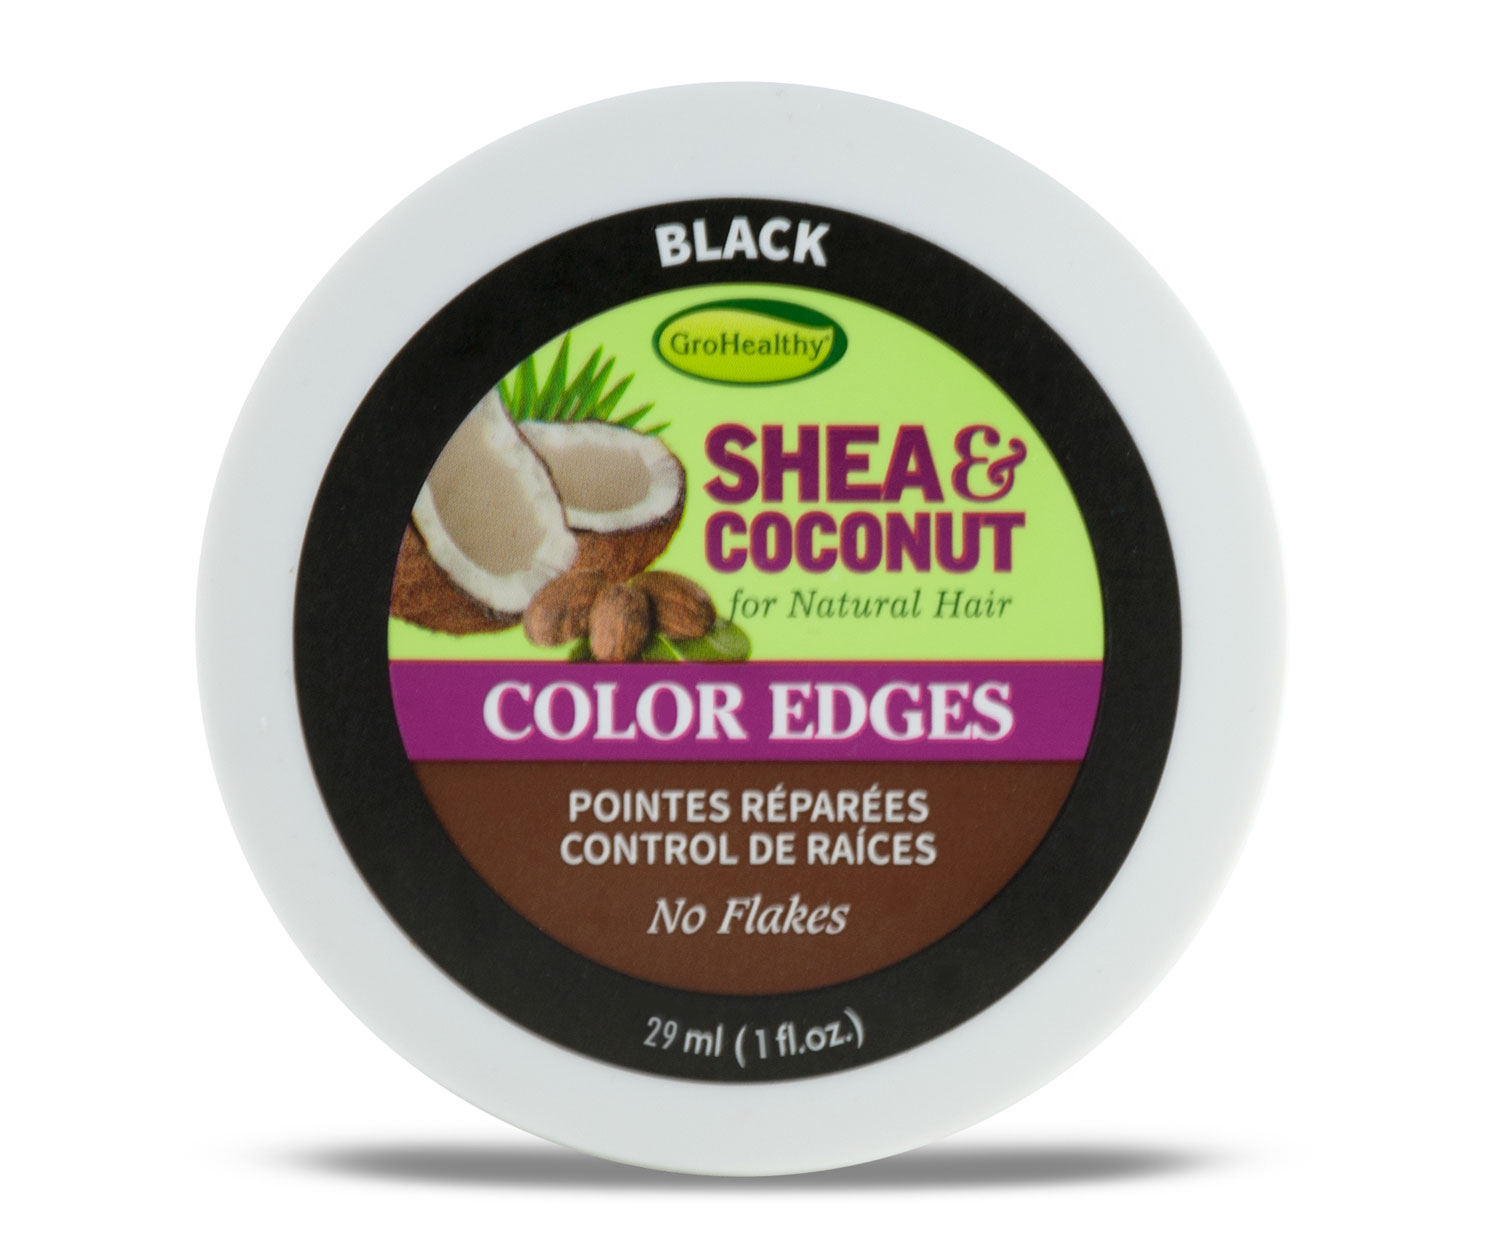 GROHEALTHY Shea & Coconut Color Edges, £3.99